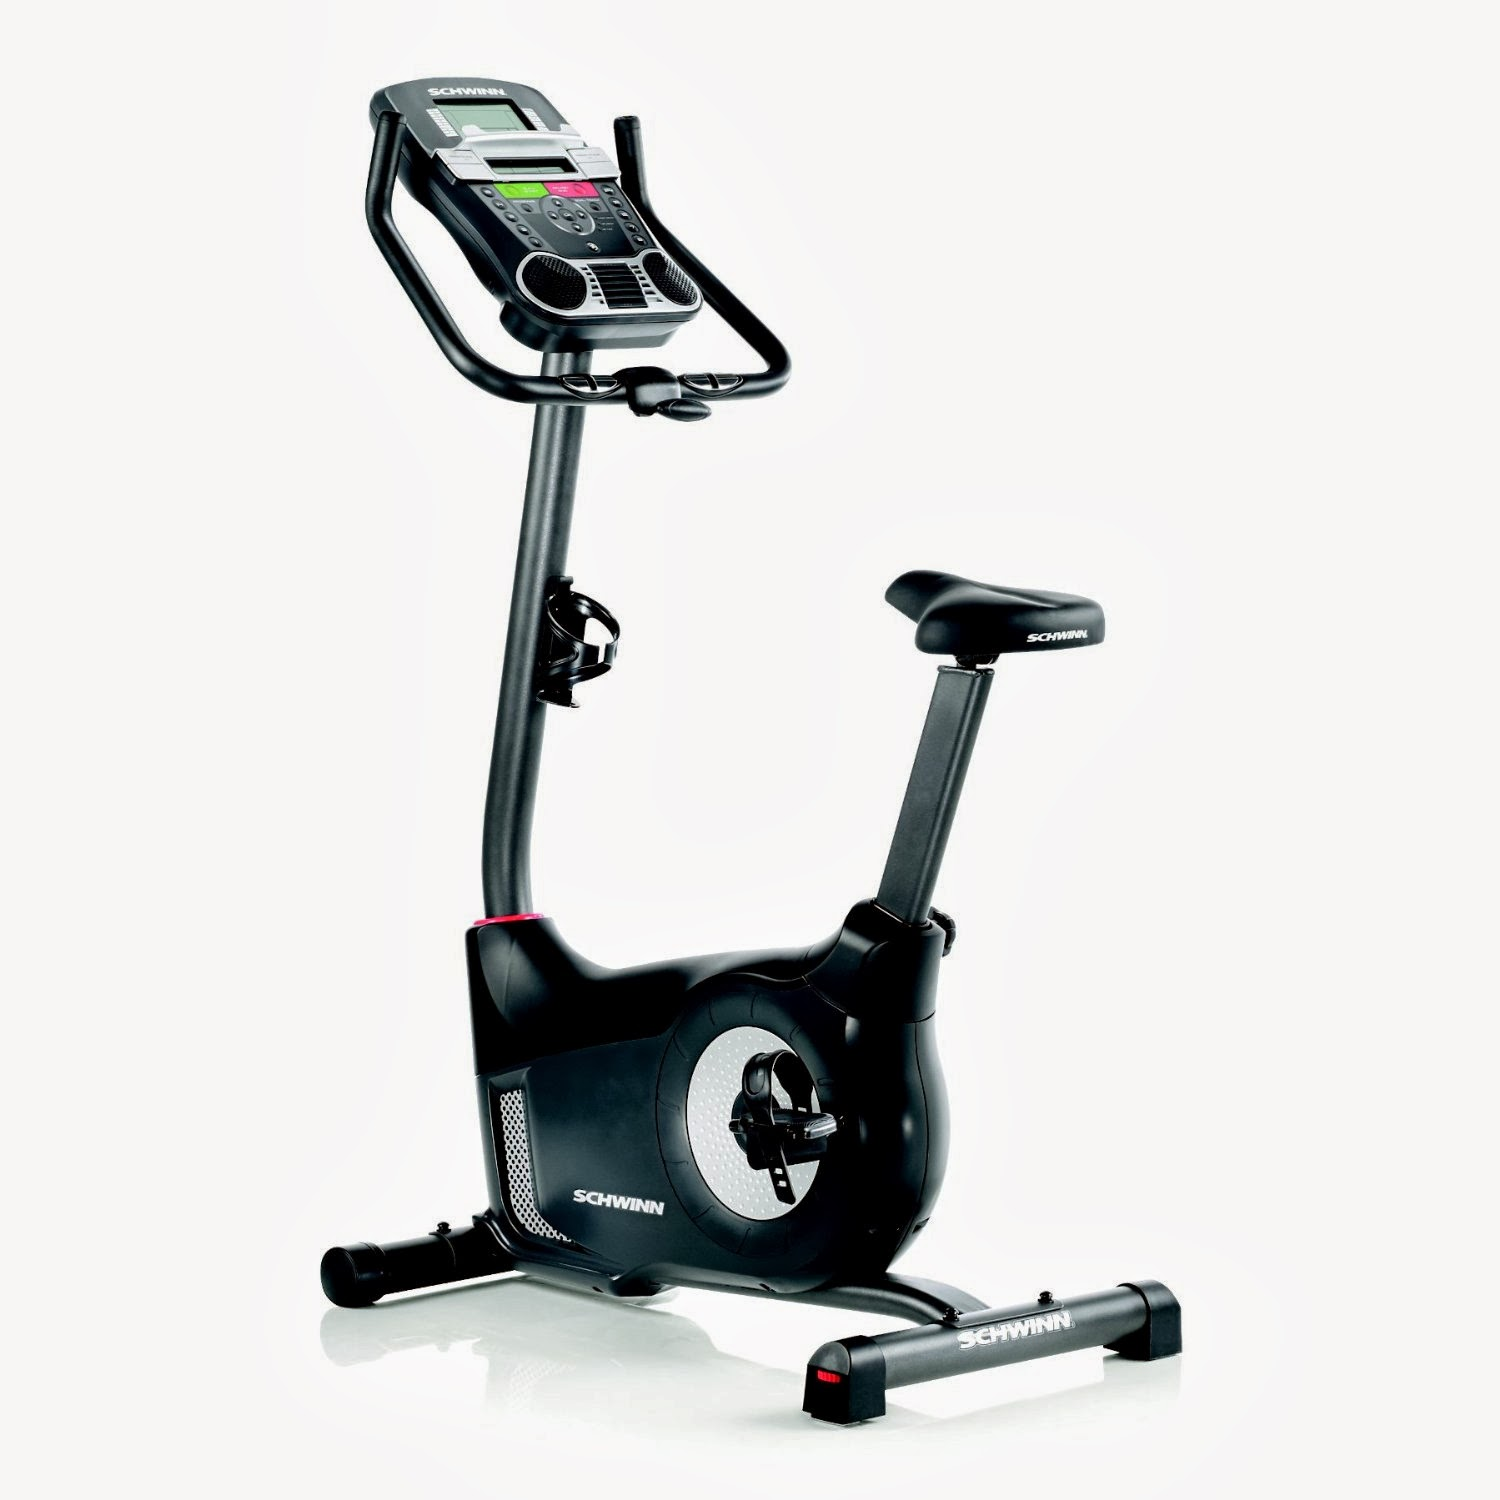 Schwinn 130 Upright Exercise Bike, picture, review features & specifications, compare with Schwinn 170